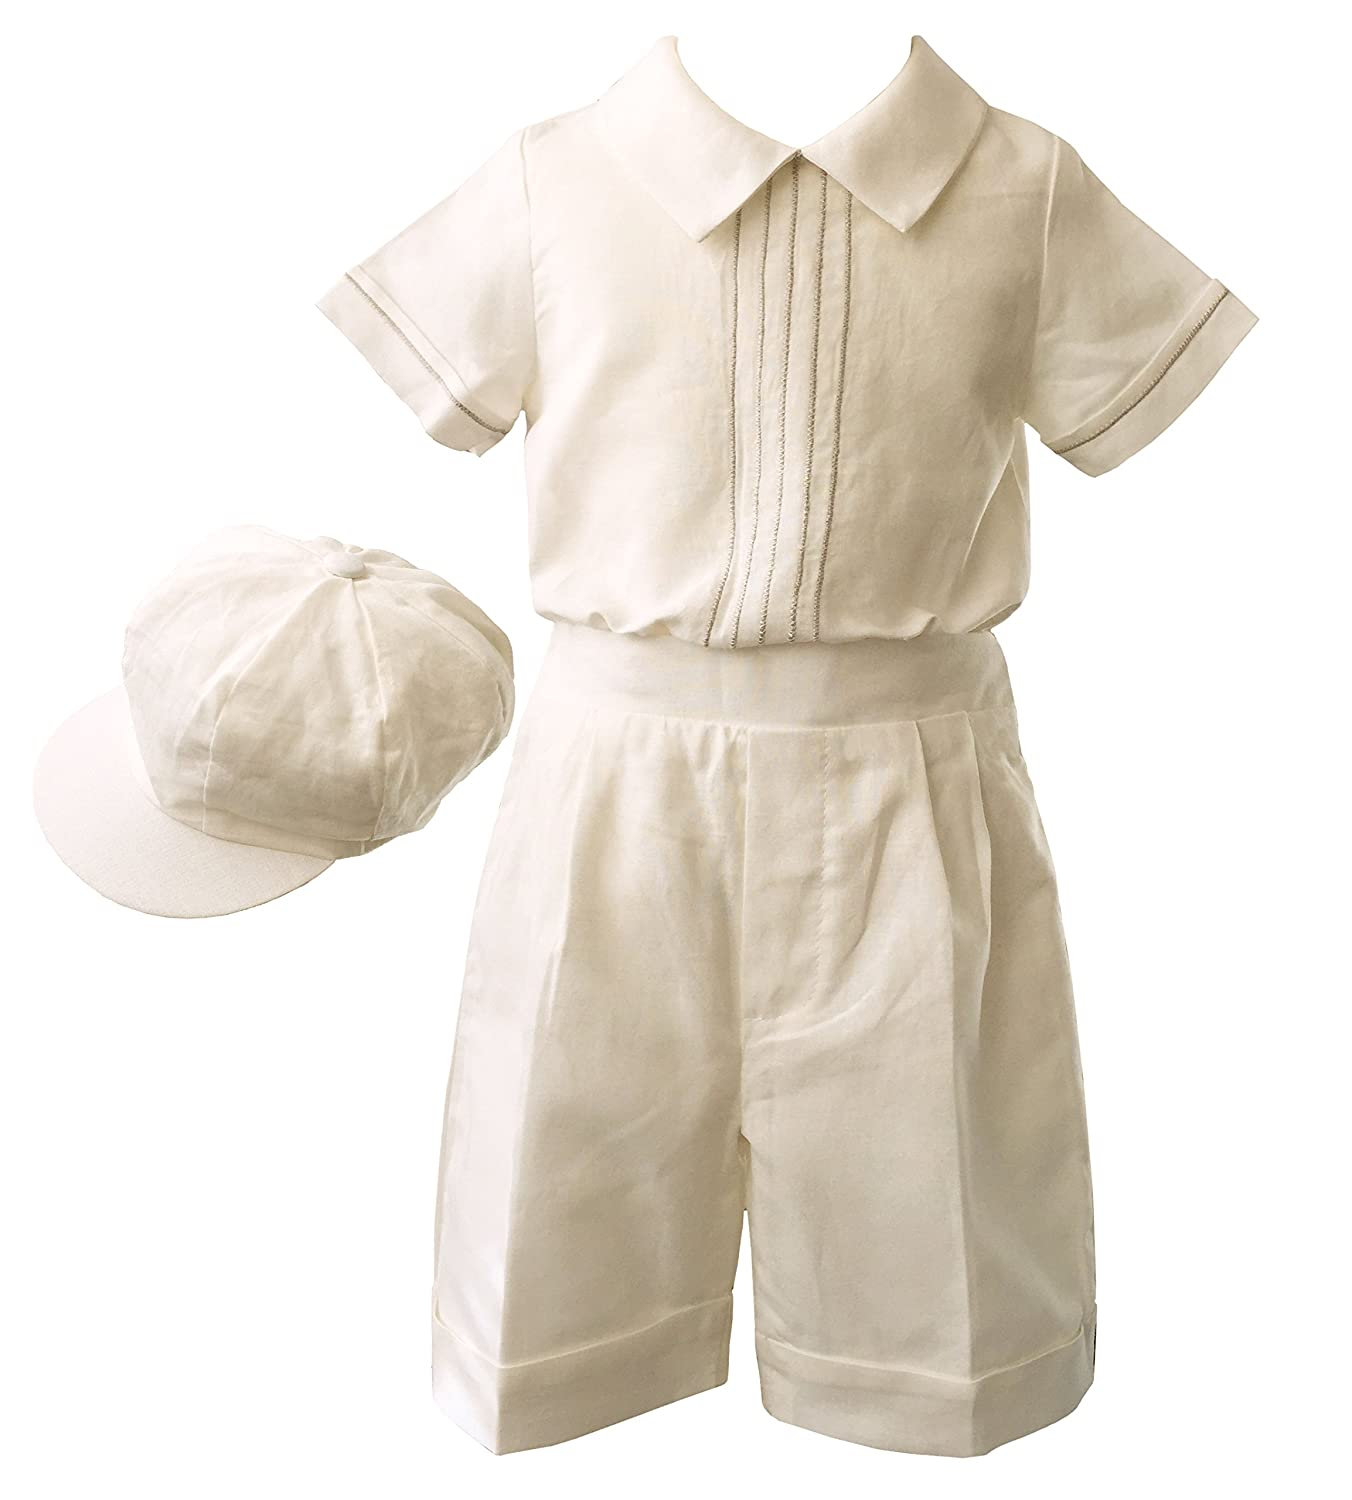 Heritage Archer - Boys Christening/Special Occasion Outift